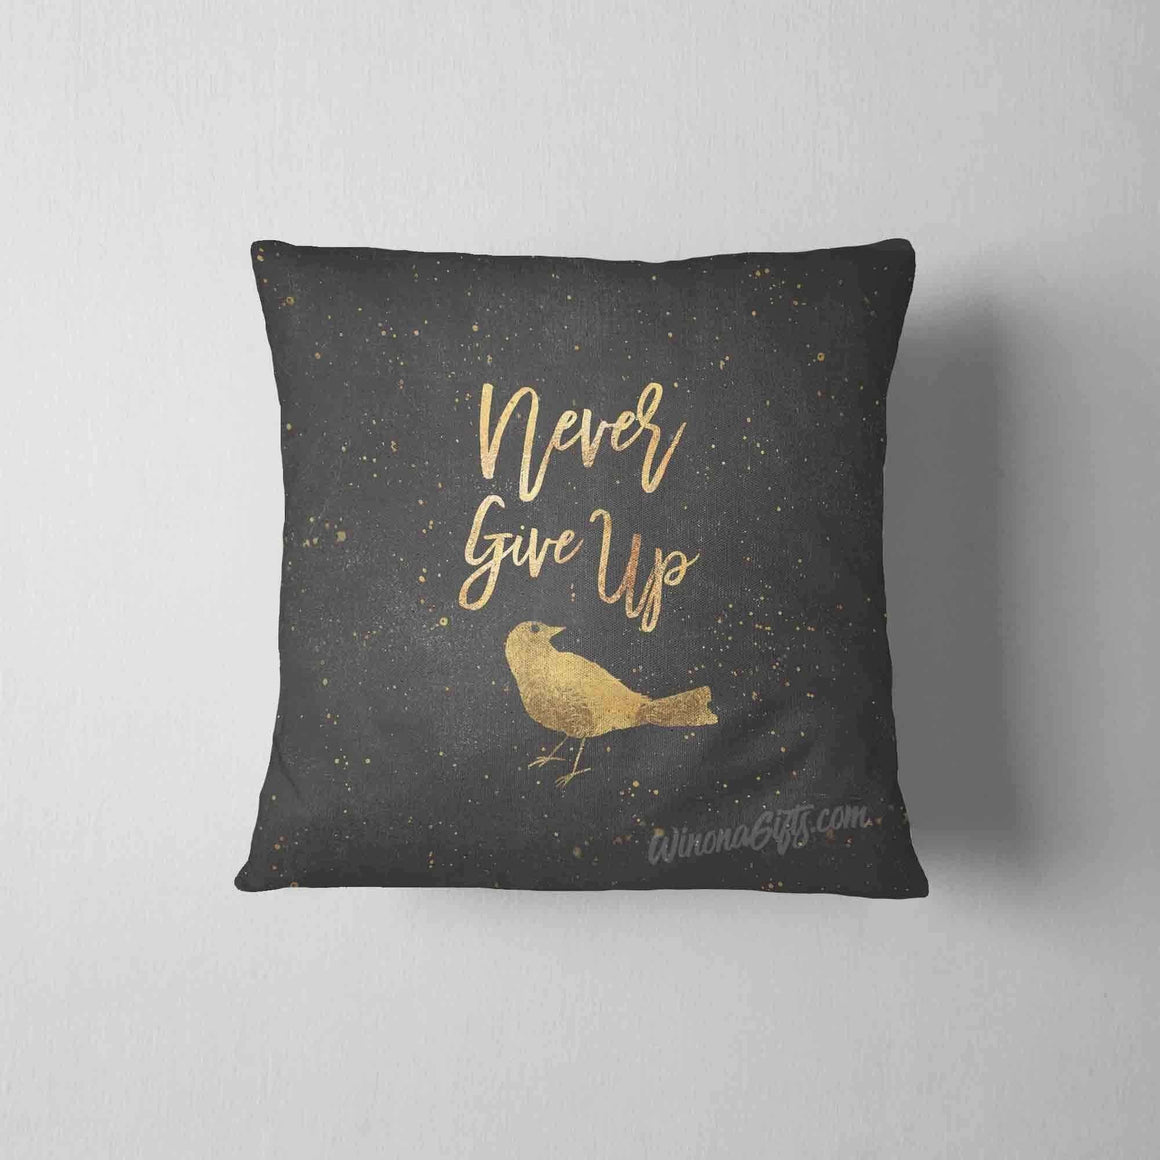 Inspirational Pillow, Never Give Up - Kari Yearous Photography WinonaGifts KetoGifts LoveDecorah